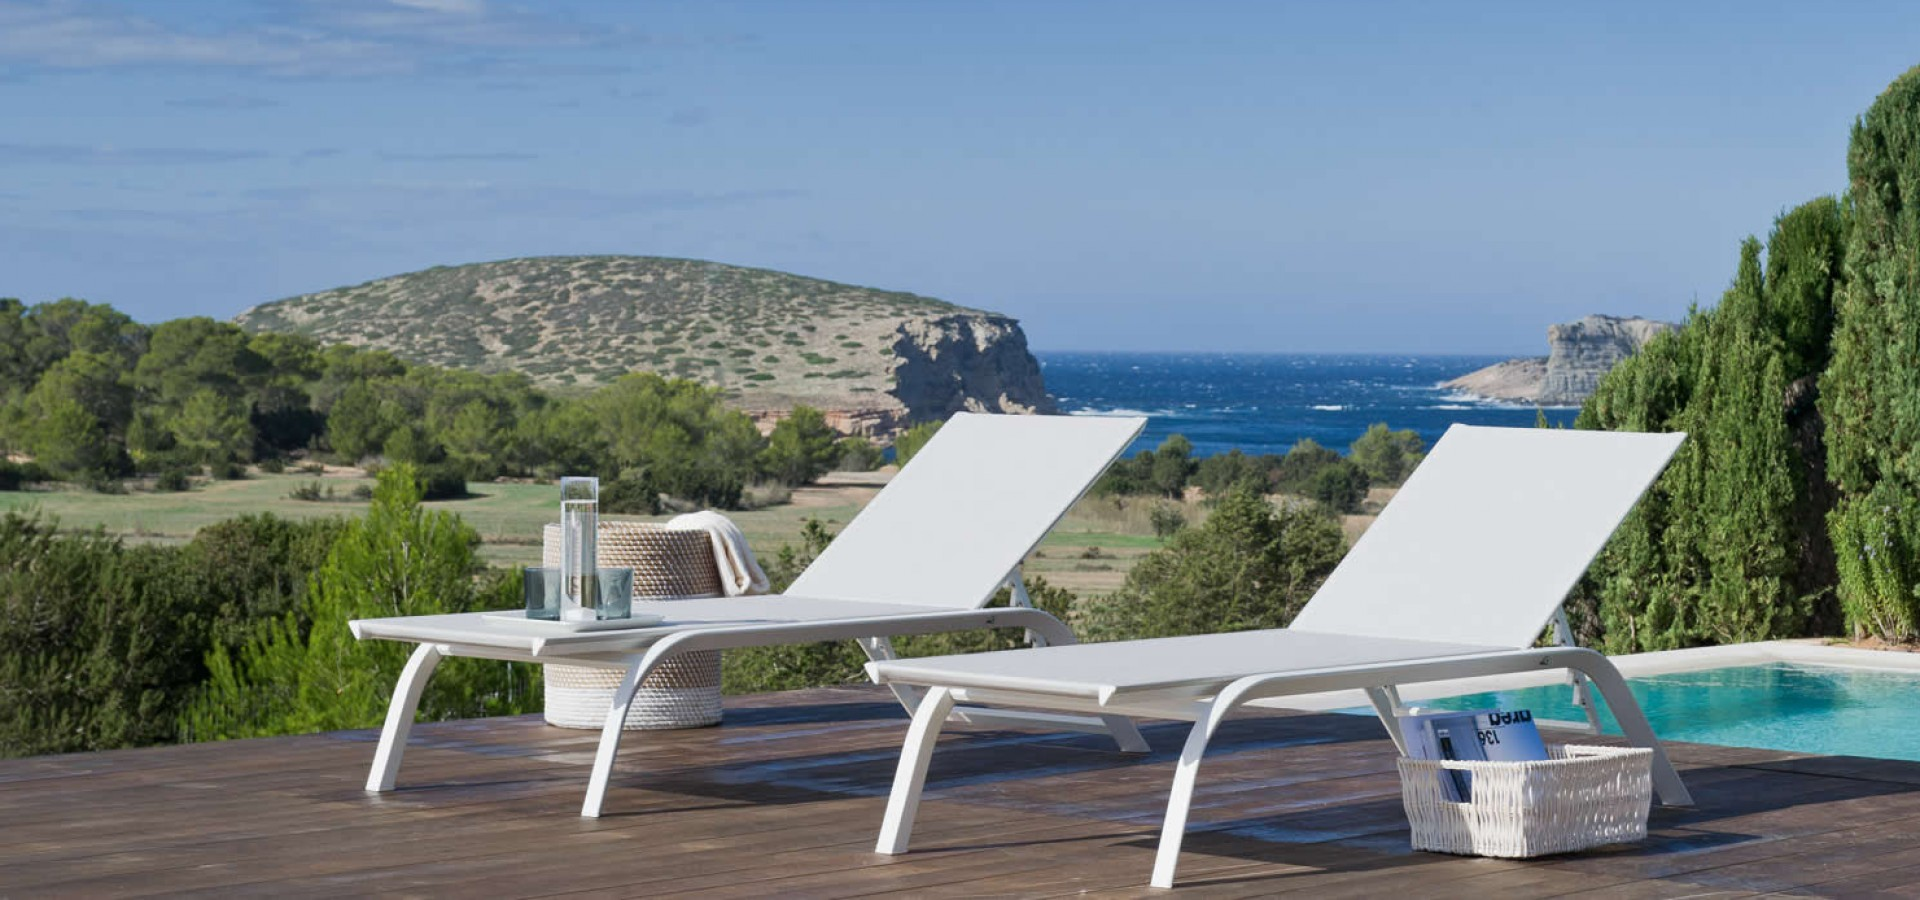 Sun Loungers and sling chairs